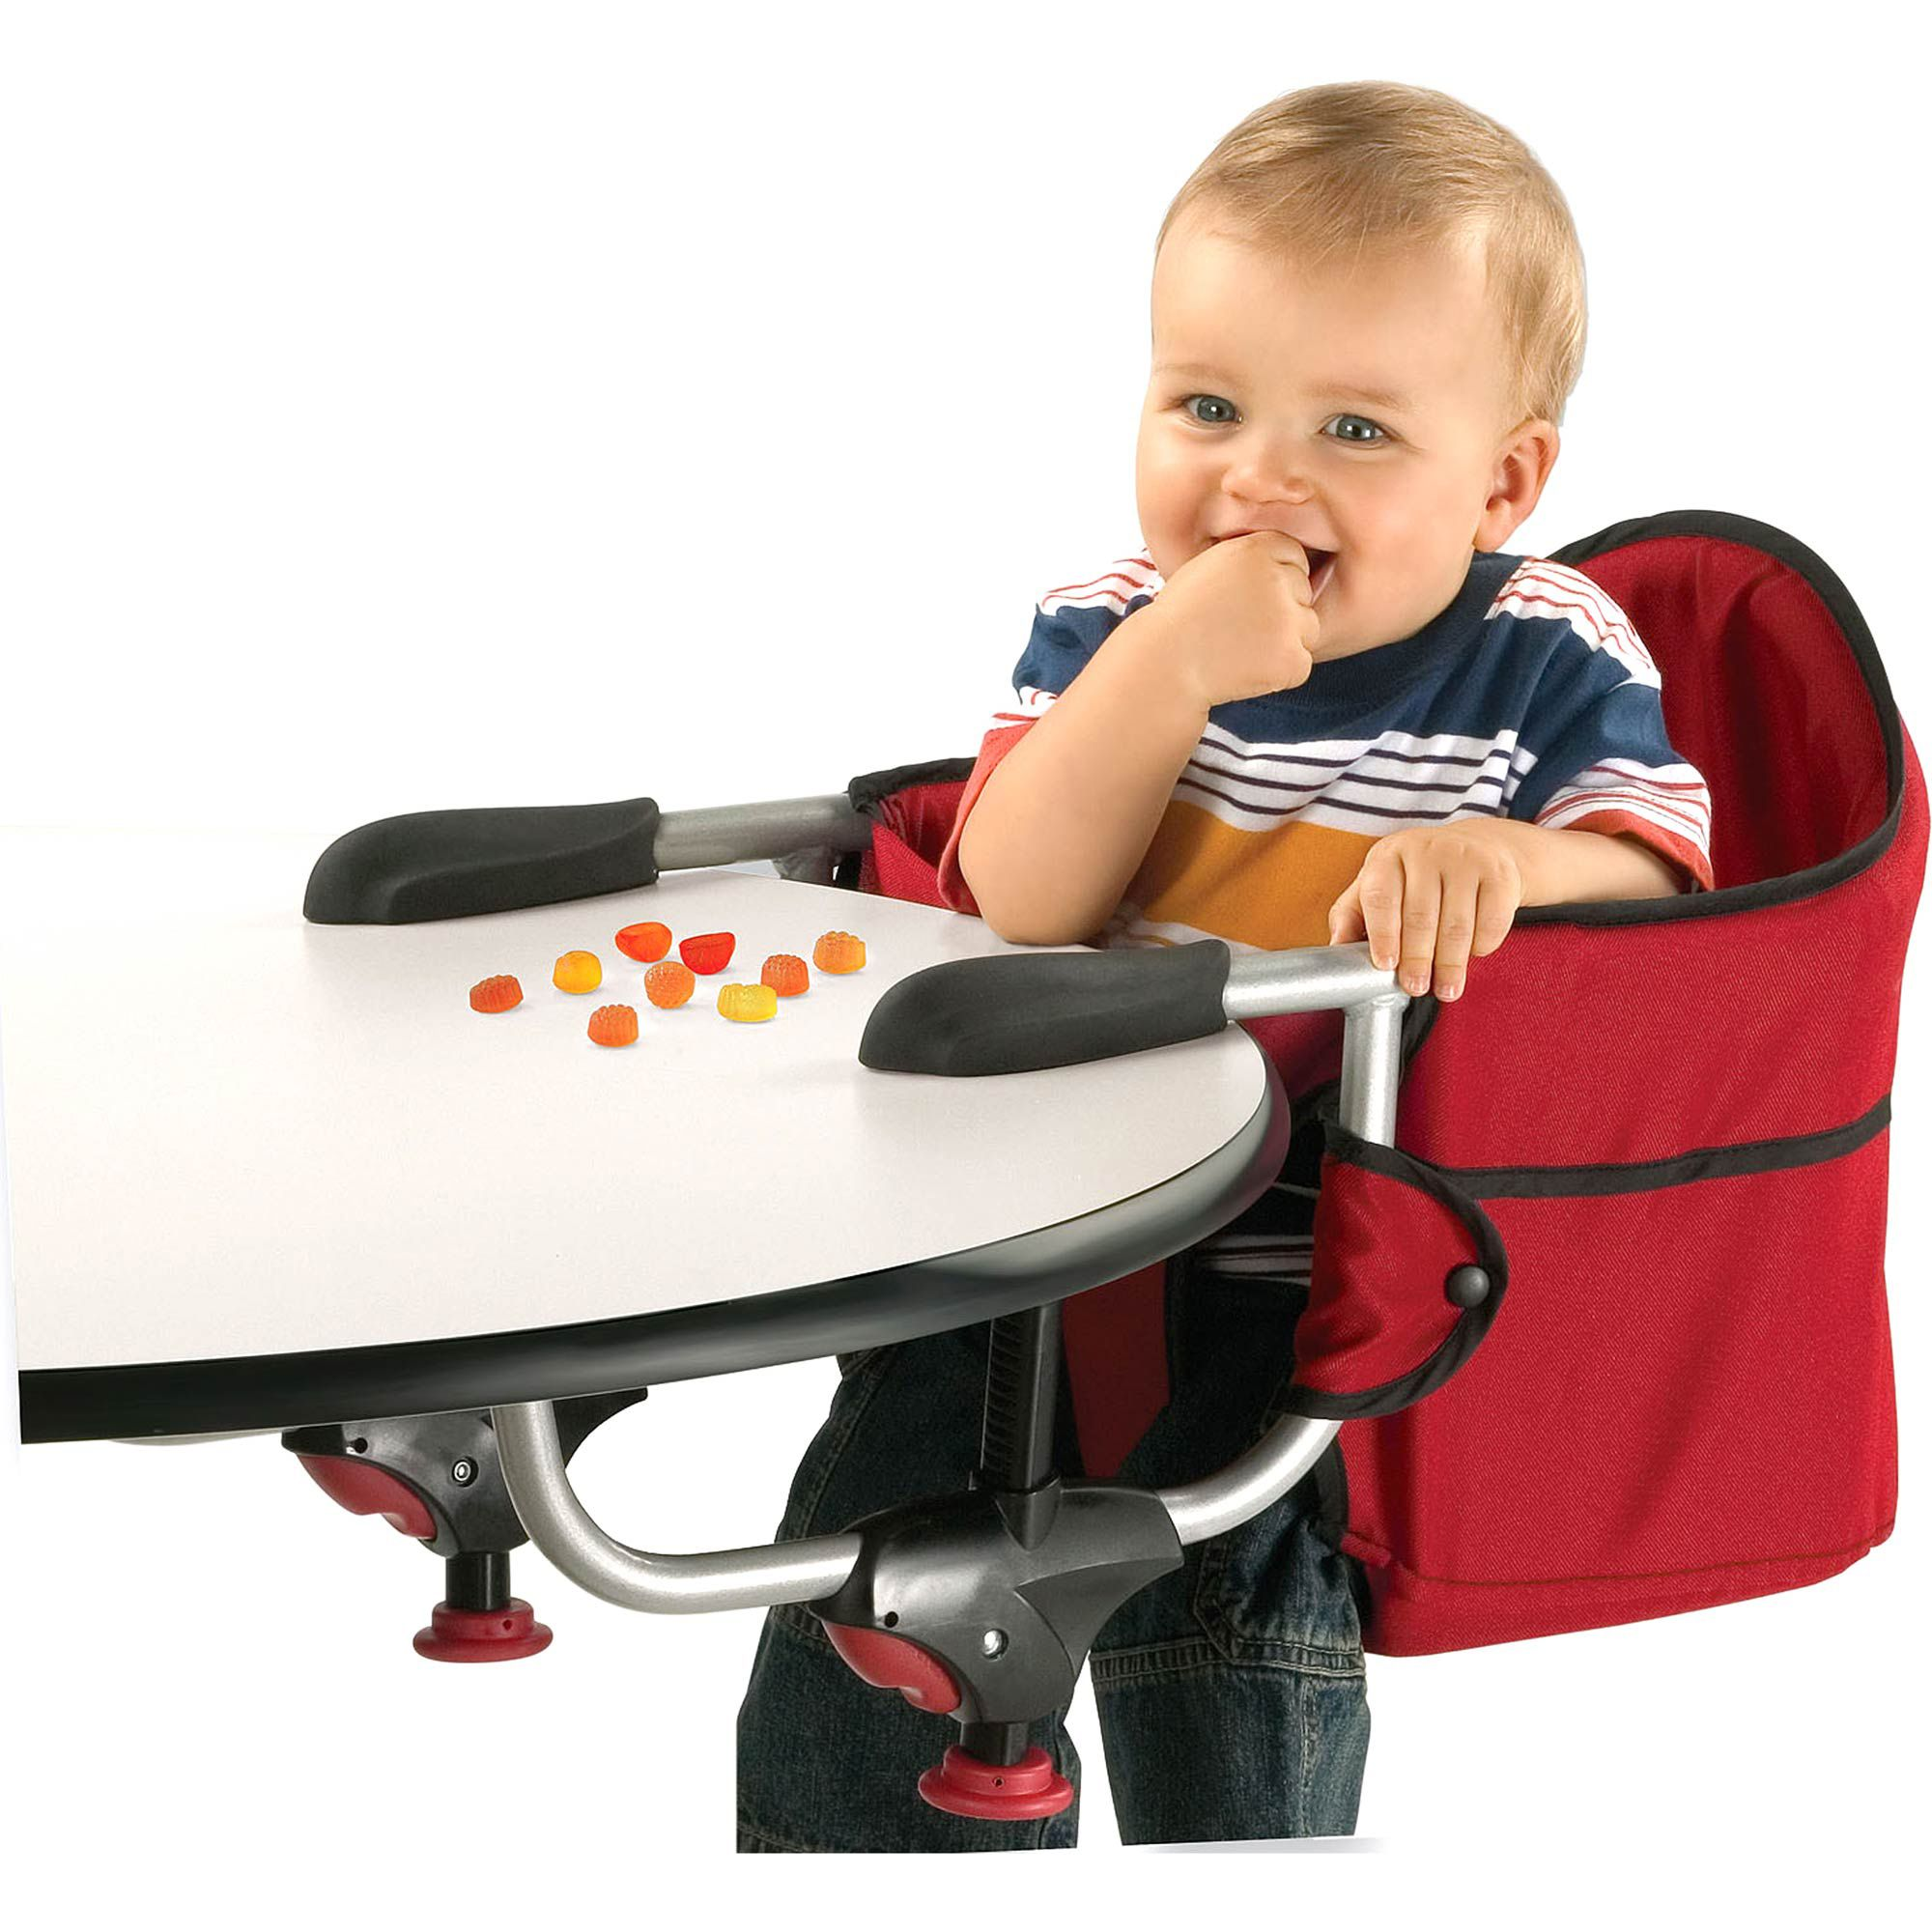 The Chicco Caddy Hook On Chair Is The Perfect Travel Highchair To Fit Your Busy Lifestyle Portable High Chairs Baby High Chair Travel High Chair